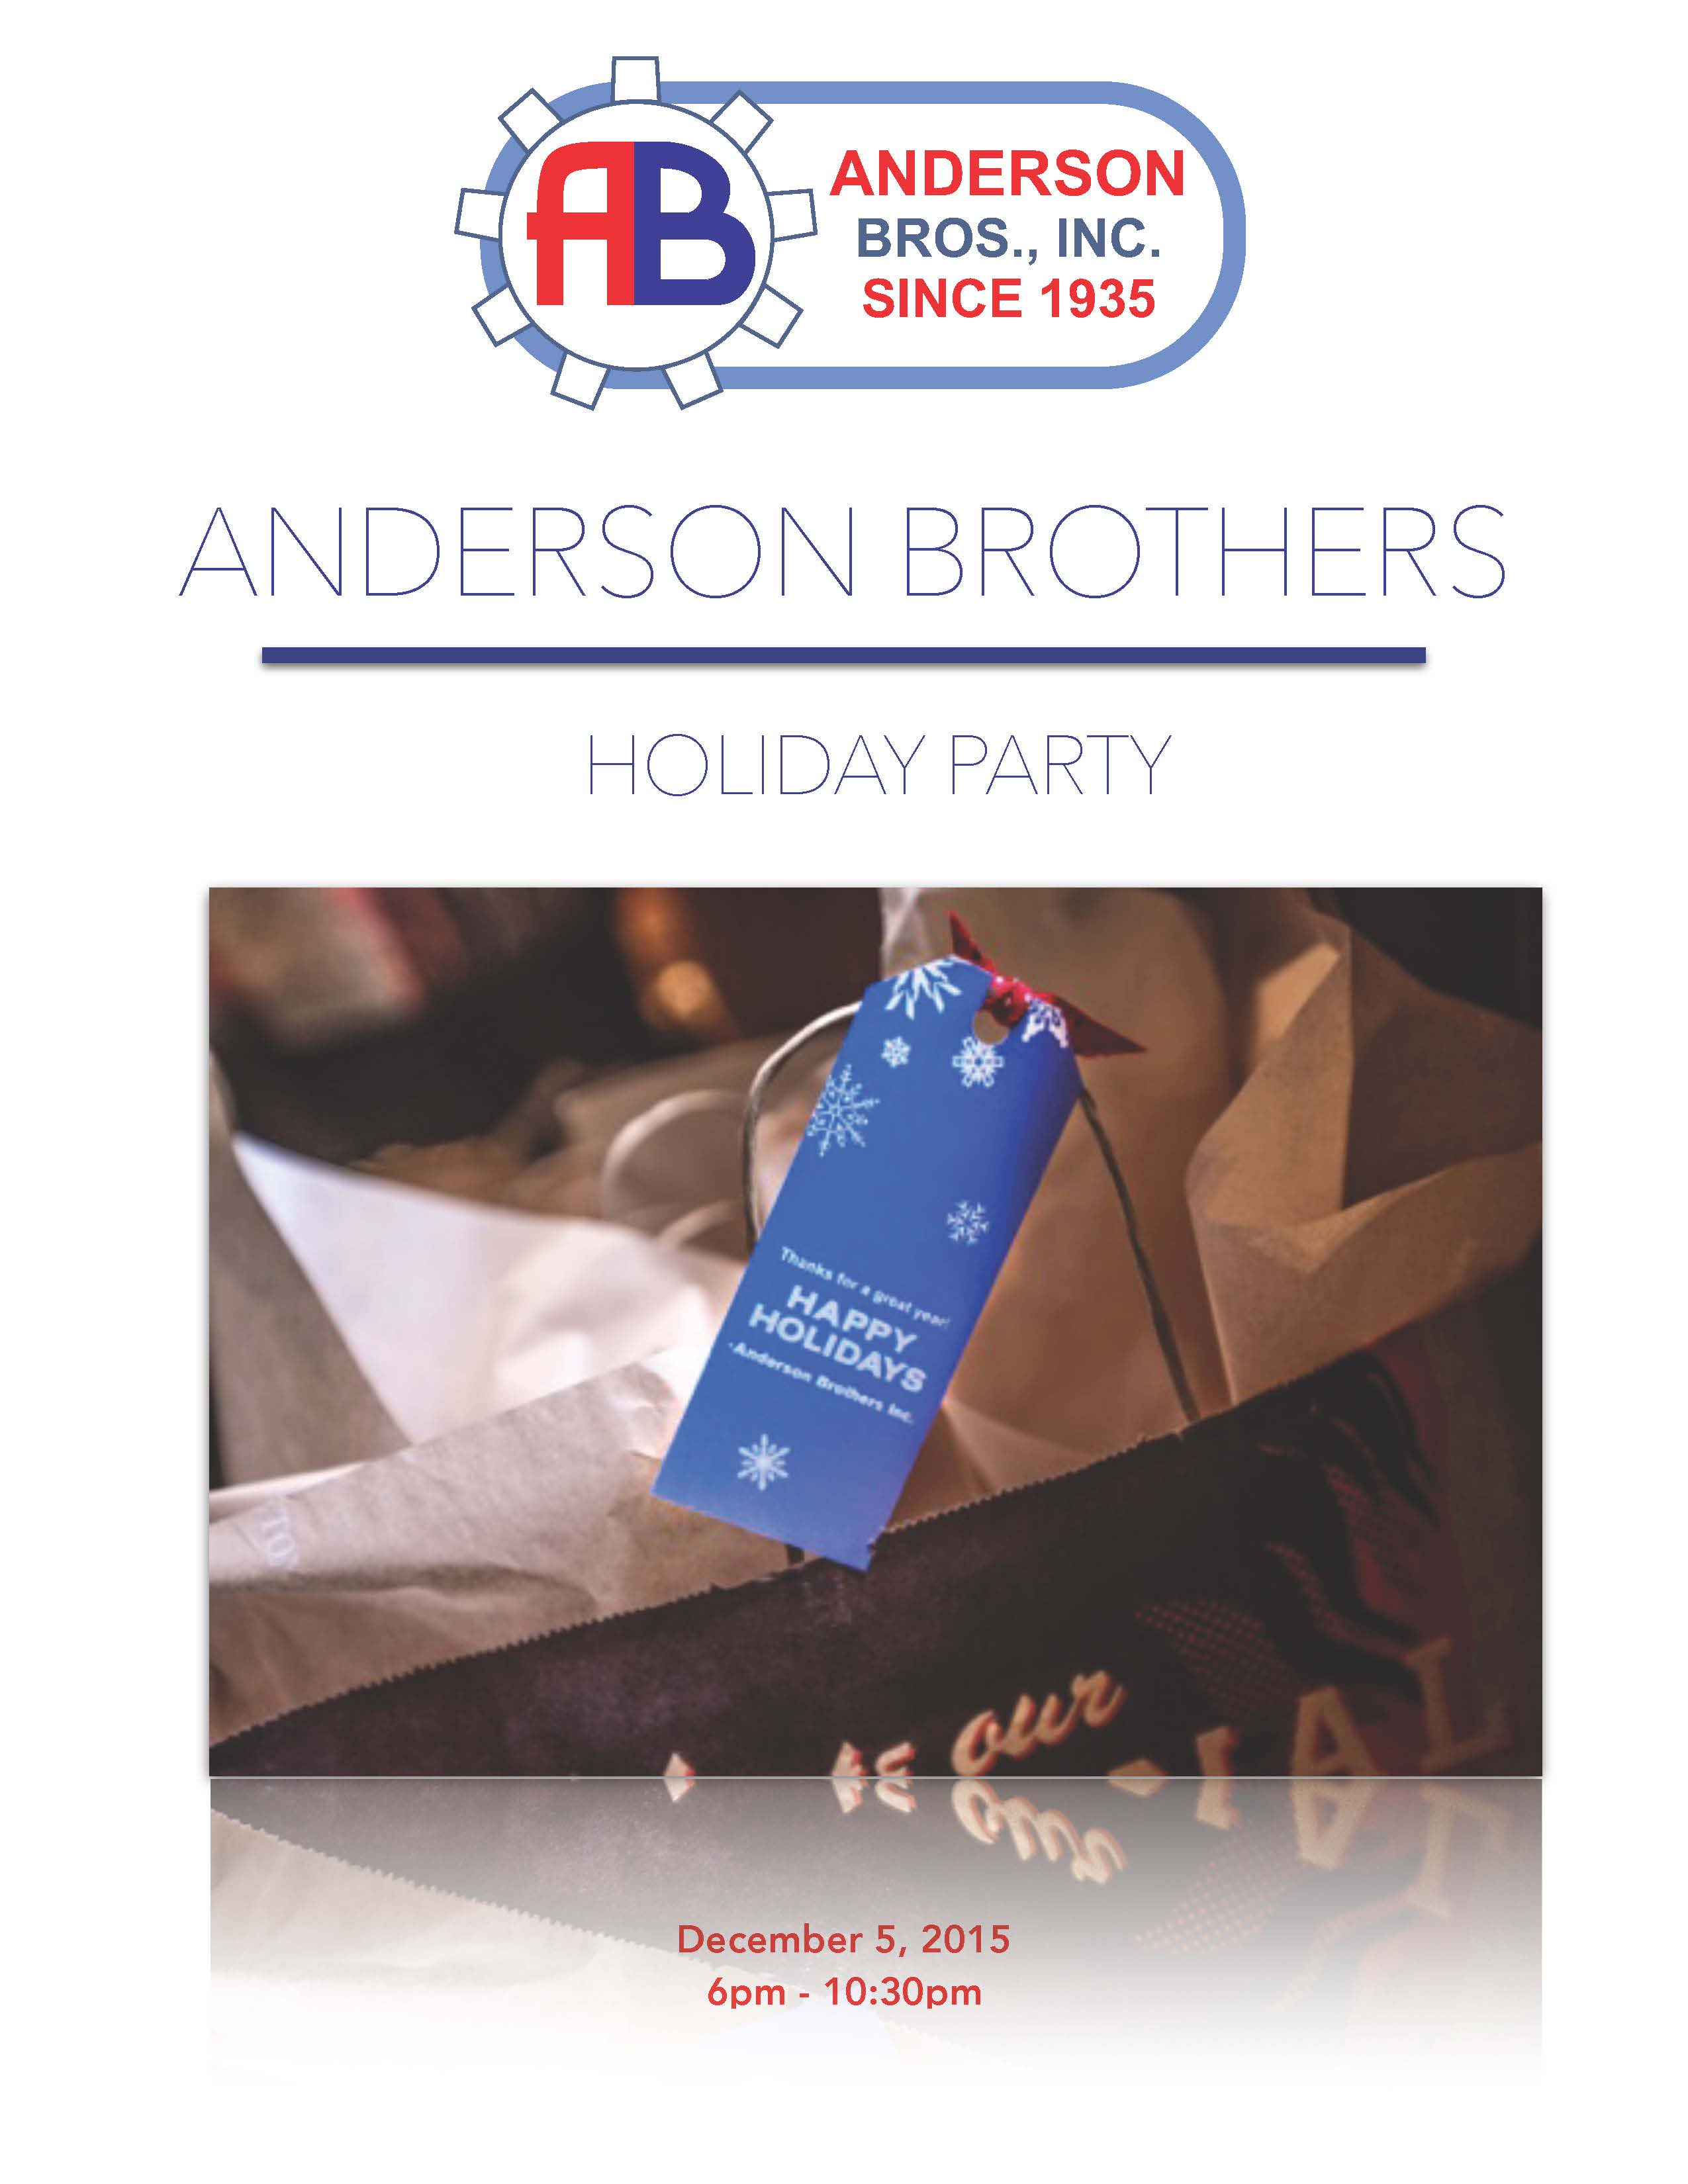 Abros Holiday Party 2015 Wrapbook_Page_1